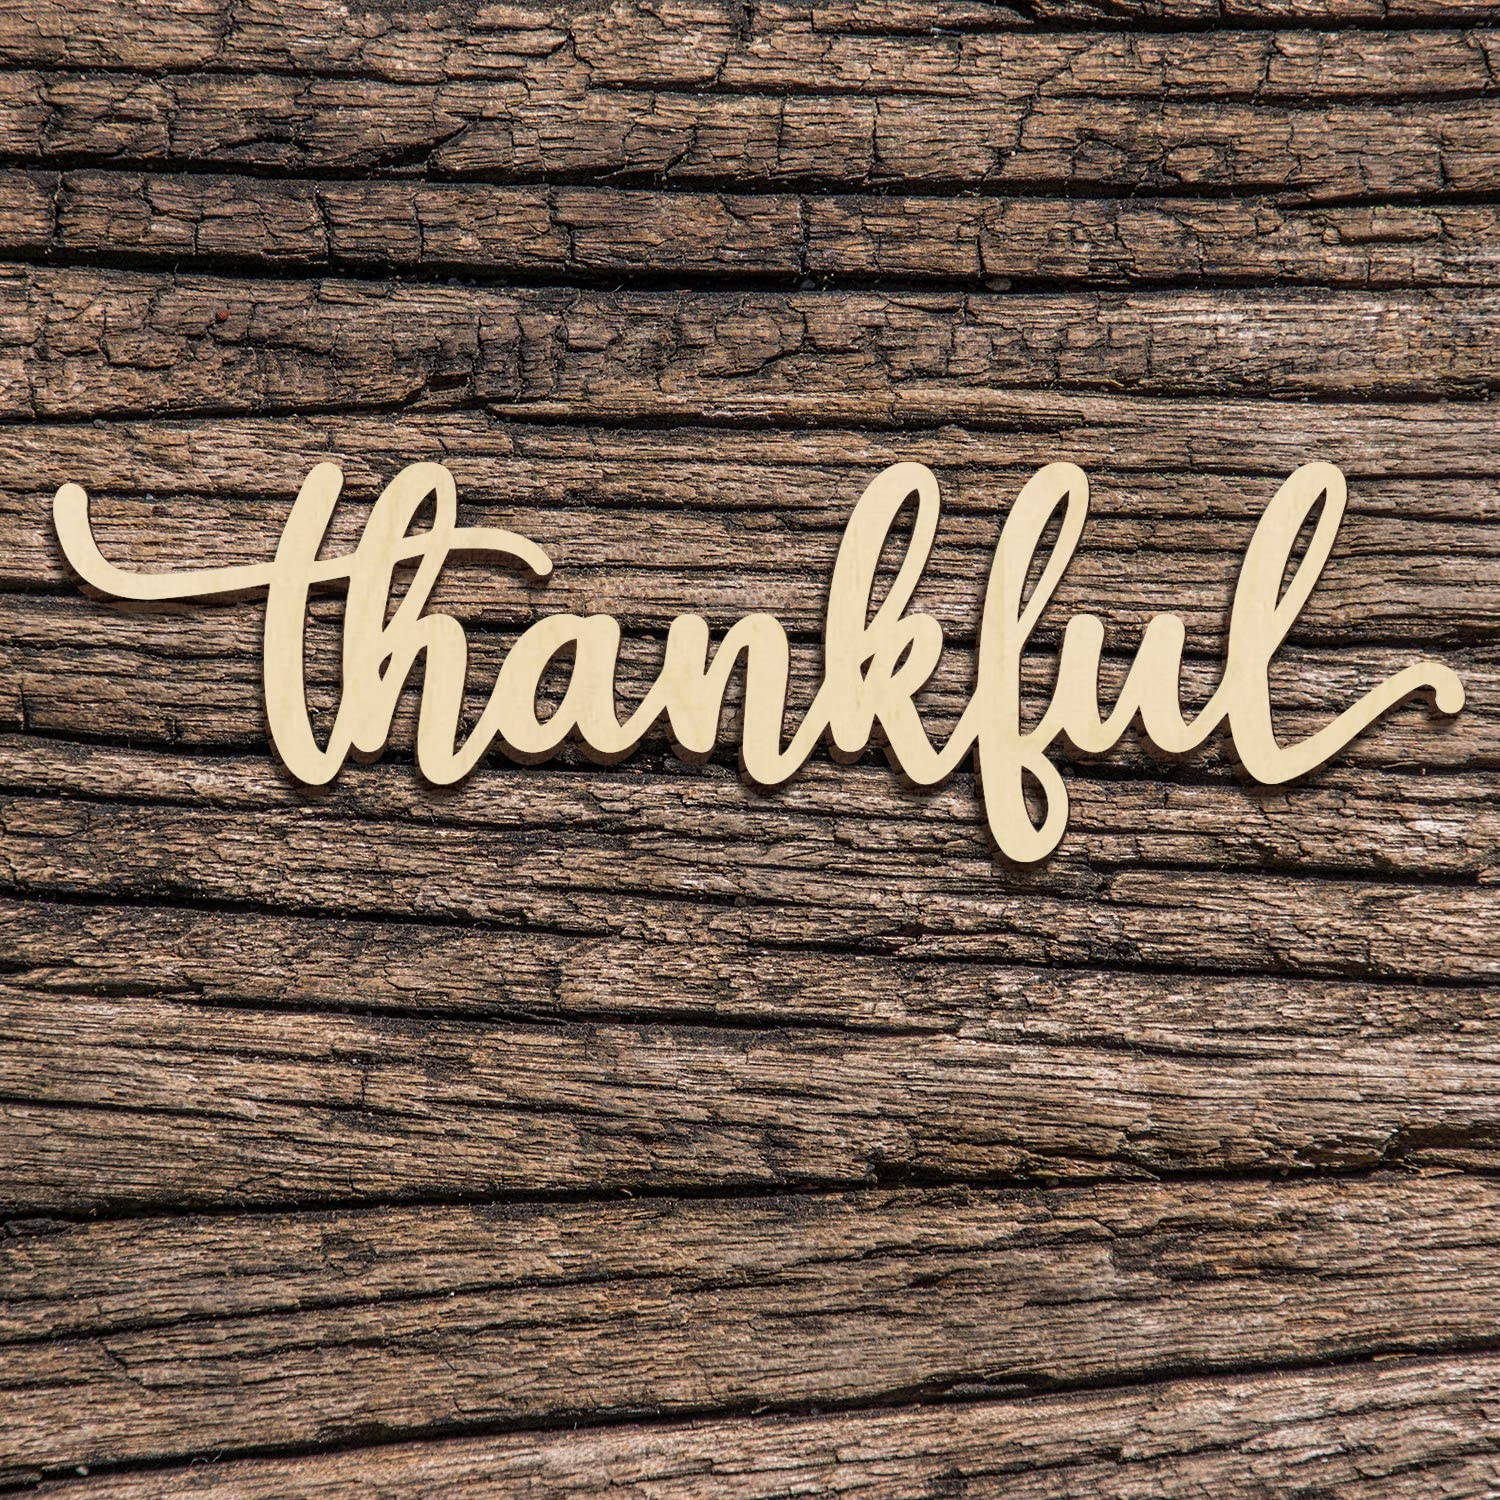 Zhuper Thankful Word Sign Wall Decor Wood Cutout Unfinished Rustic Thankful Signs Home Decoration Wall Art 12